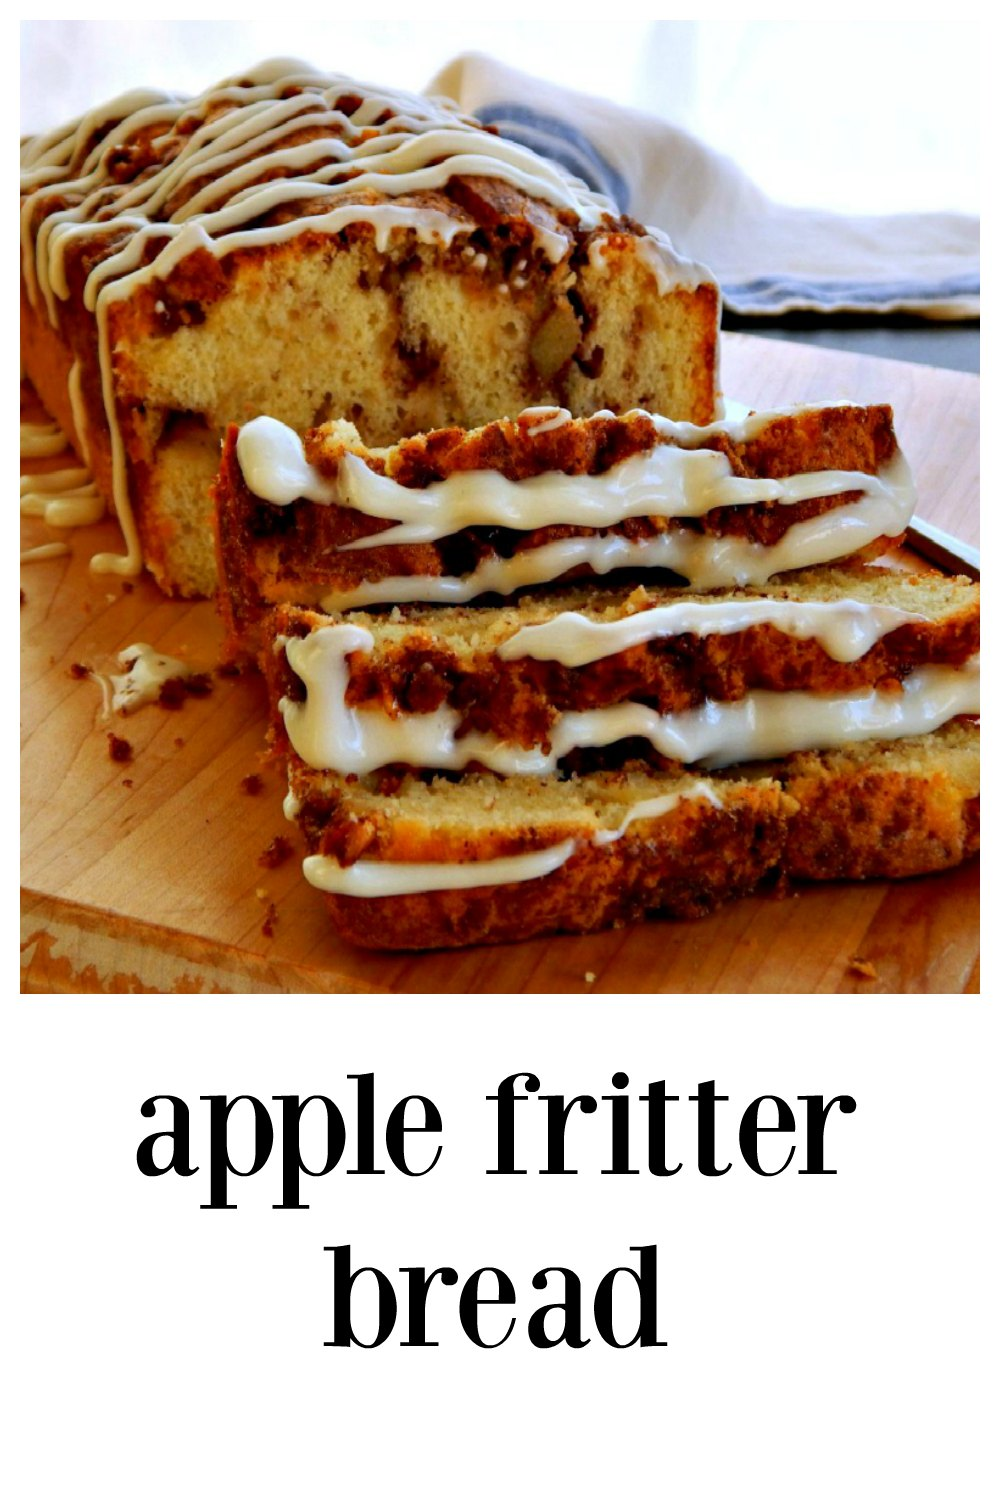 Easy Apple Fritter Bread tastes like a cross between a fritter and cake with its swirls of cinnamon sugar & apple chunks! Great for Brunch, Snacks or Potlucks. #QuickBread #AppleFritterBread #AppleCinnamonBread